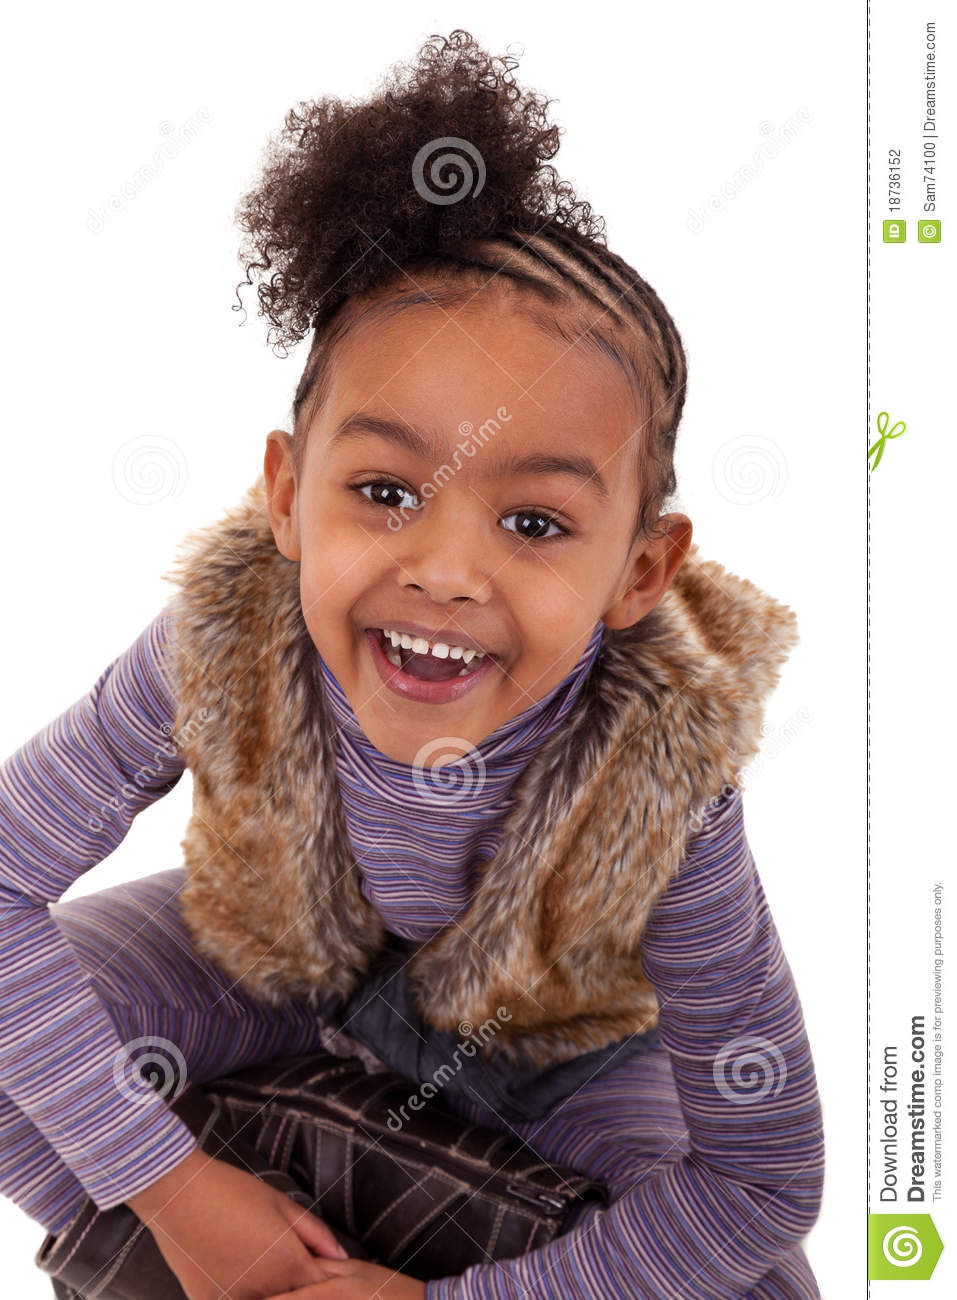 Black Girls Killing It: Cute Black Girl Smiling Stock Photo. Image Of Ethnic